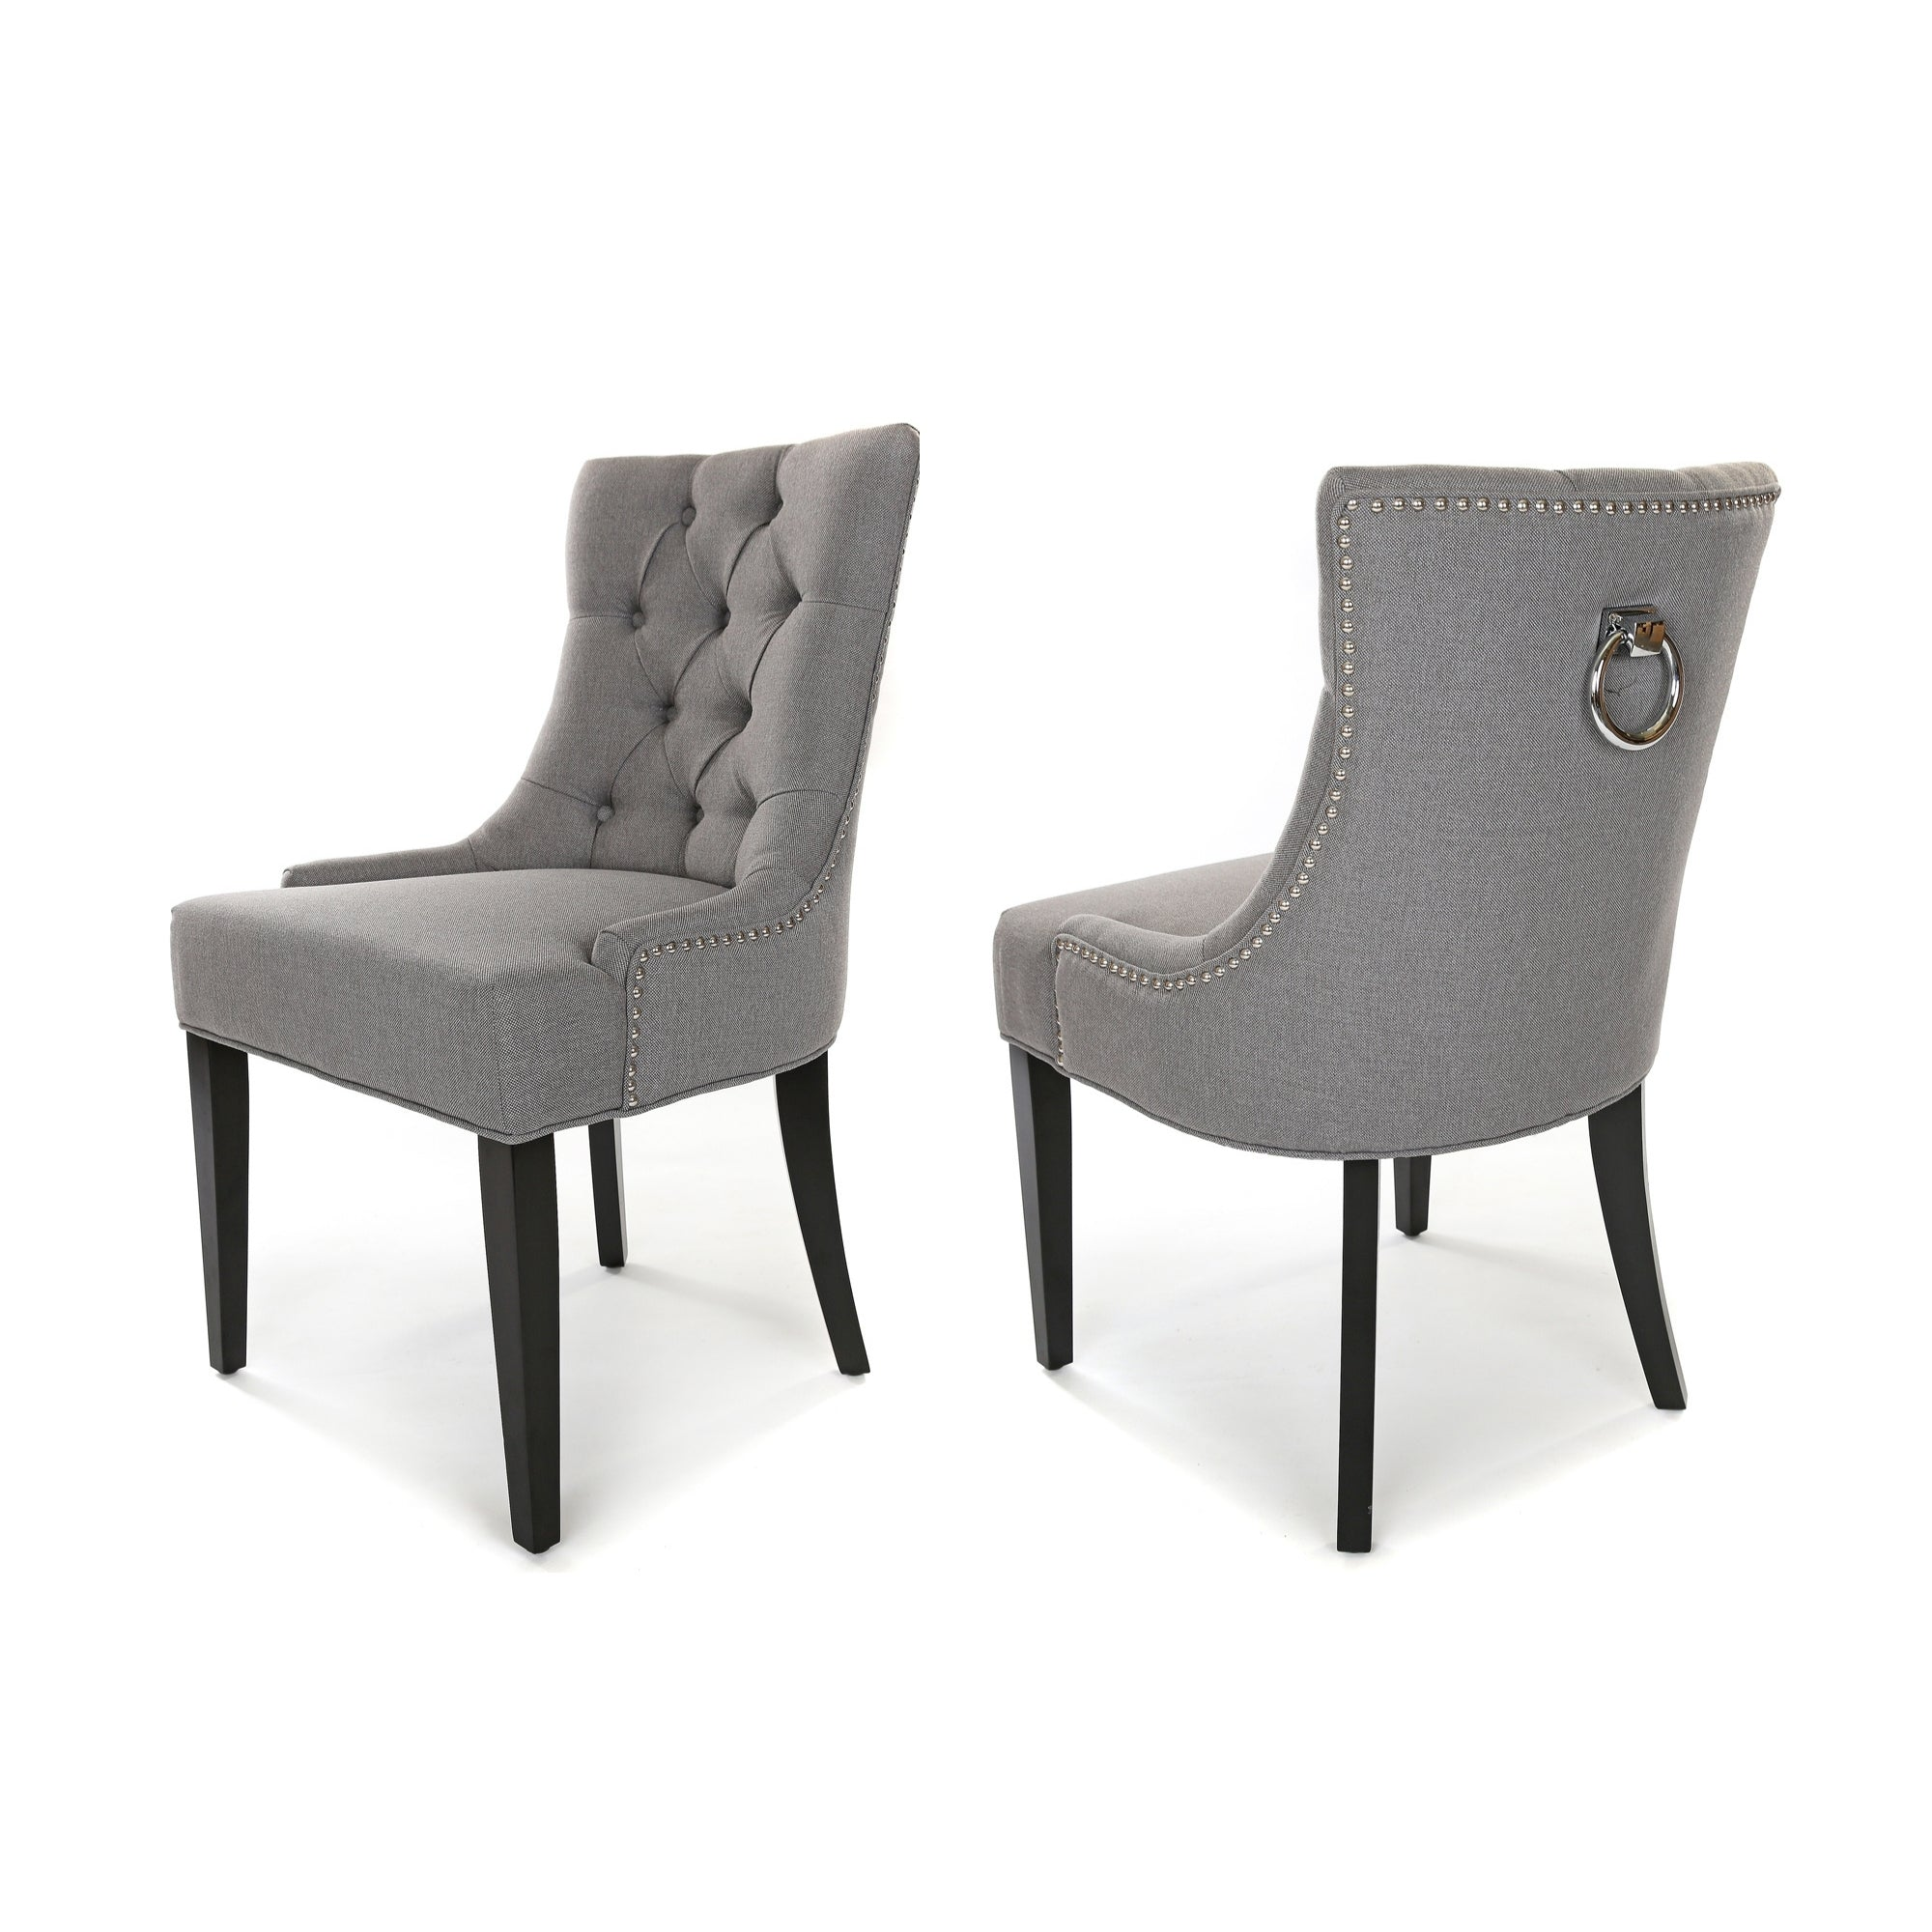 Porter Dining Chair, Ash Grey fabric, Black wood legs and a metal ring knocker